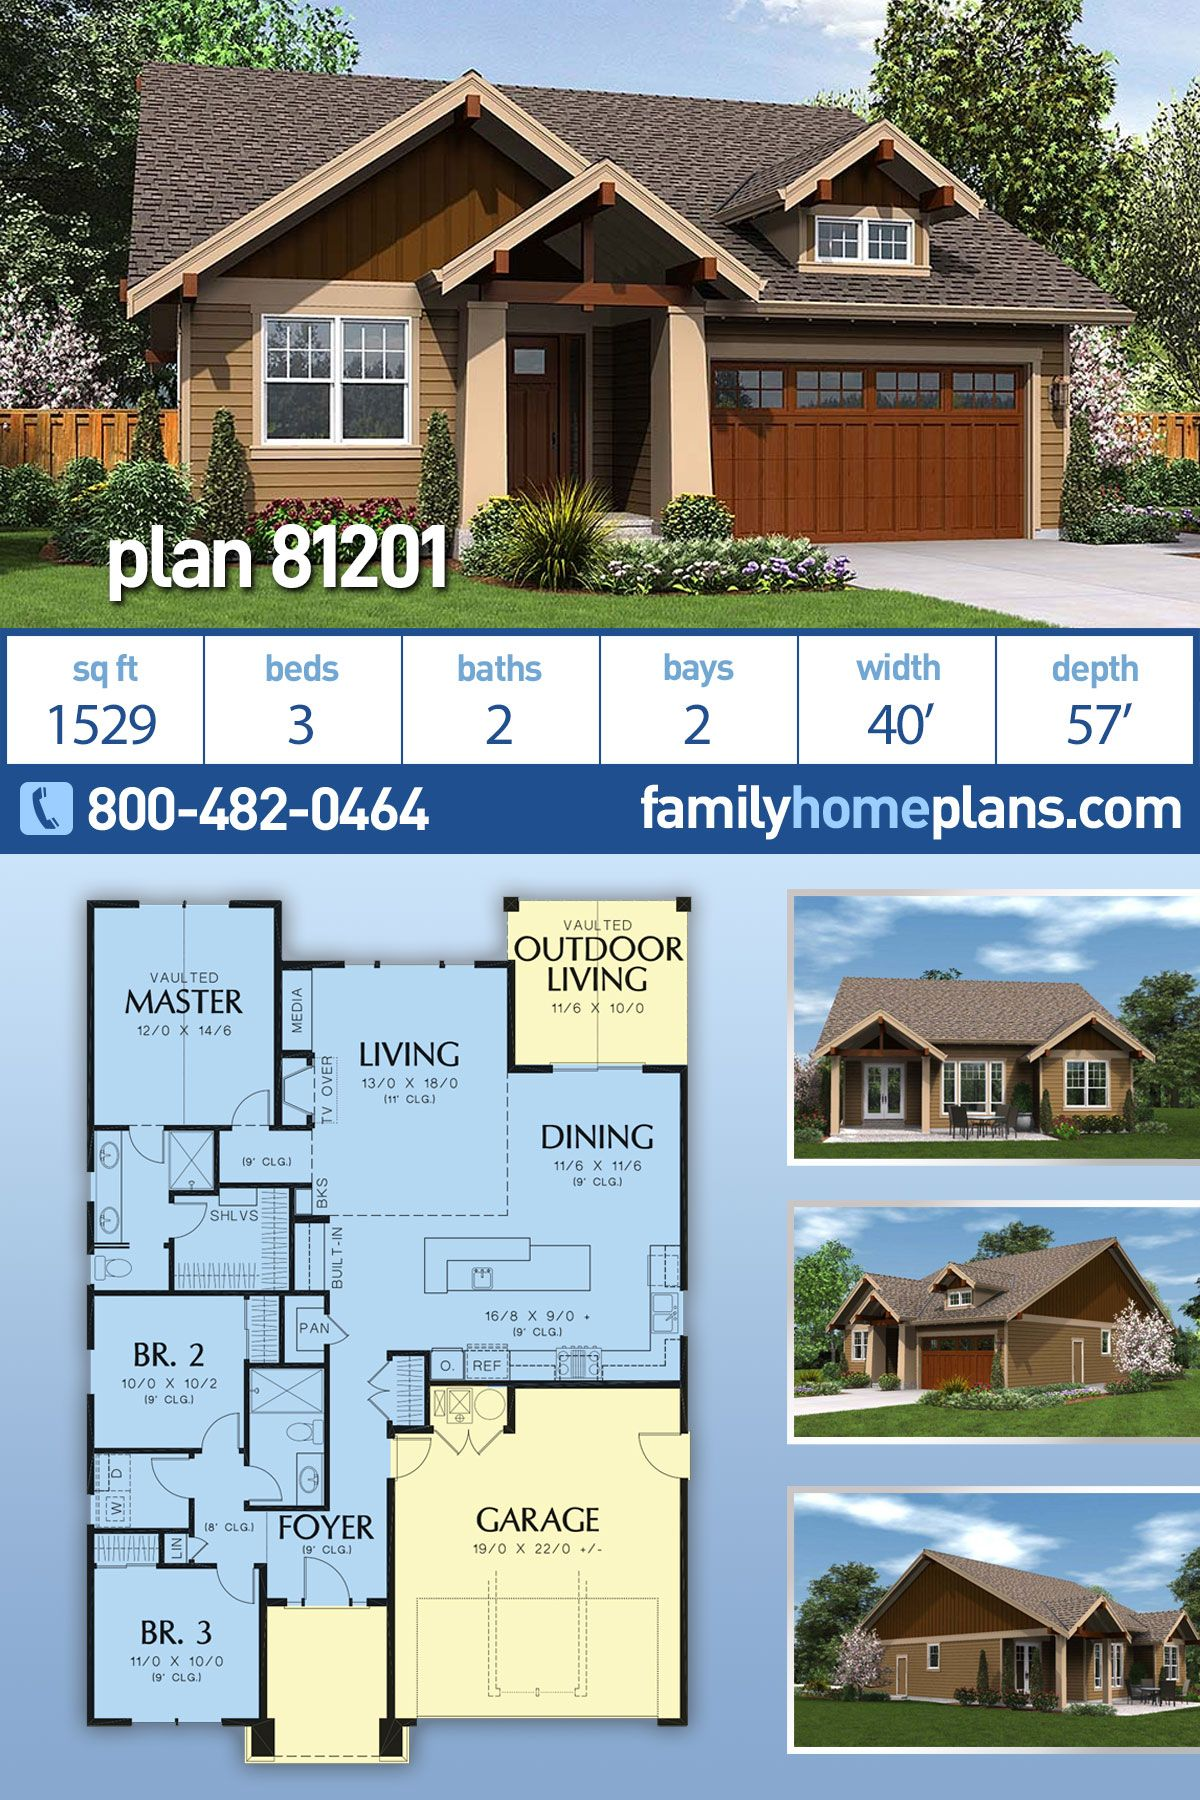 Craftsman Style House Plan 81201 With 3 Bed 2 Bath 2 Car Garage Craftsman Style House Plans Craftsman House Plans Ranch House Plans